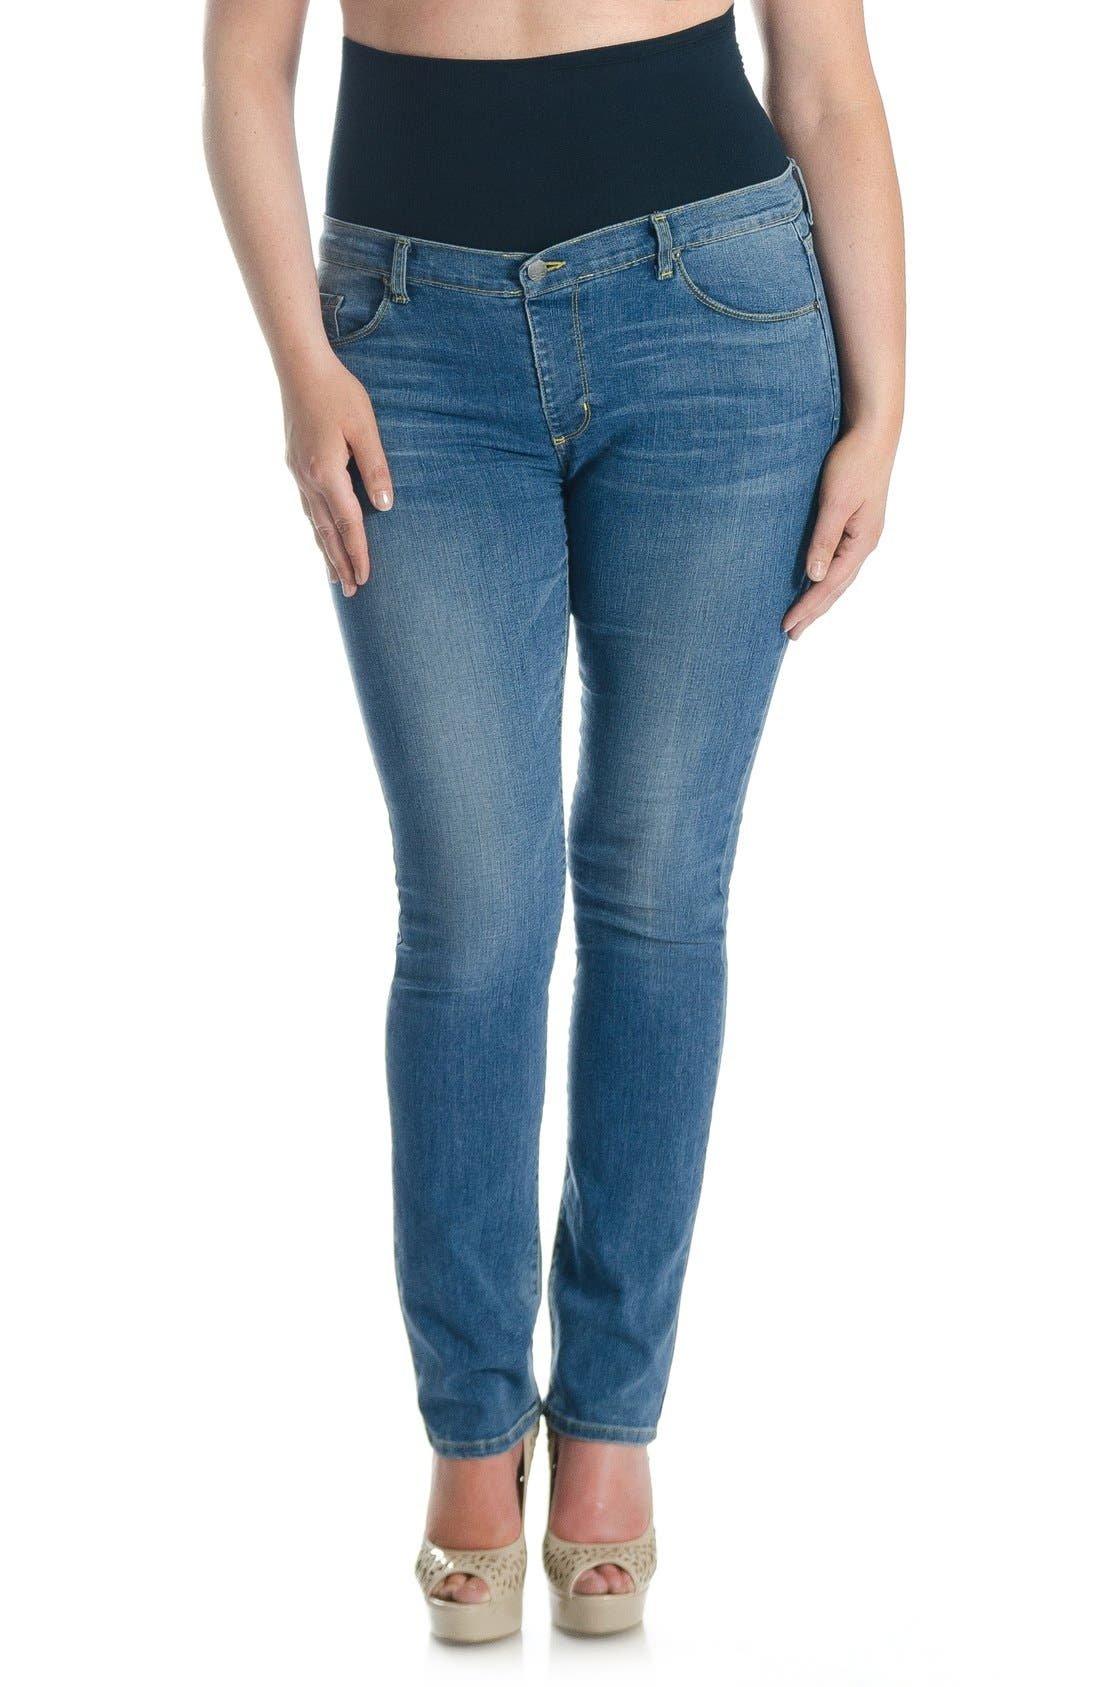 Mid Rise Straight LegShapewearJeans,                         Main,                         color, Light Wash